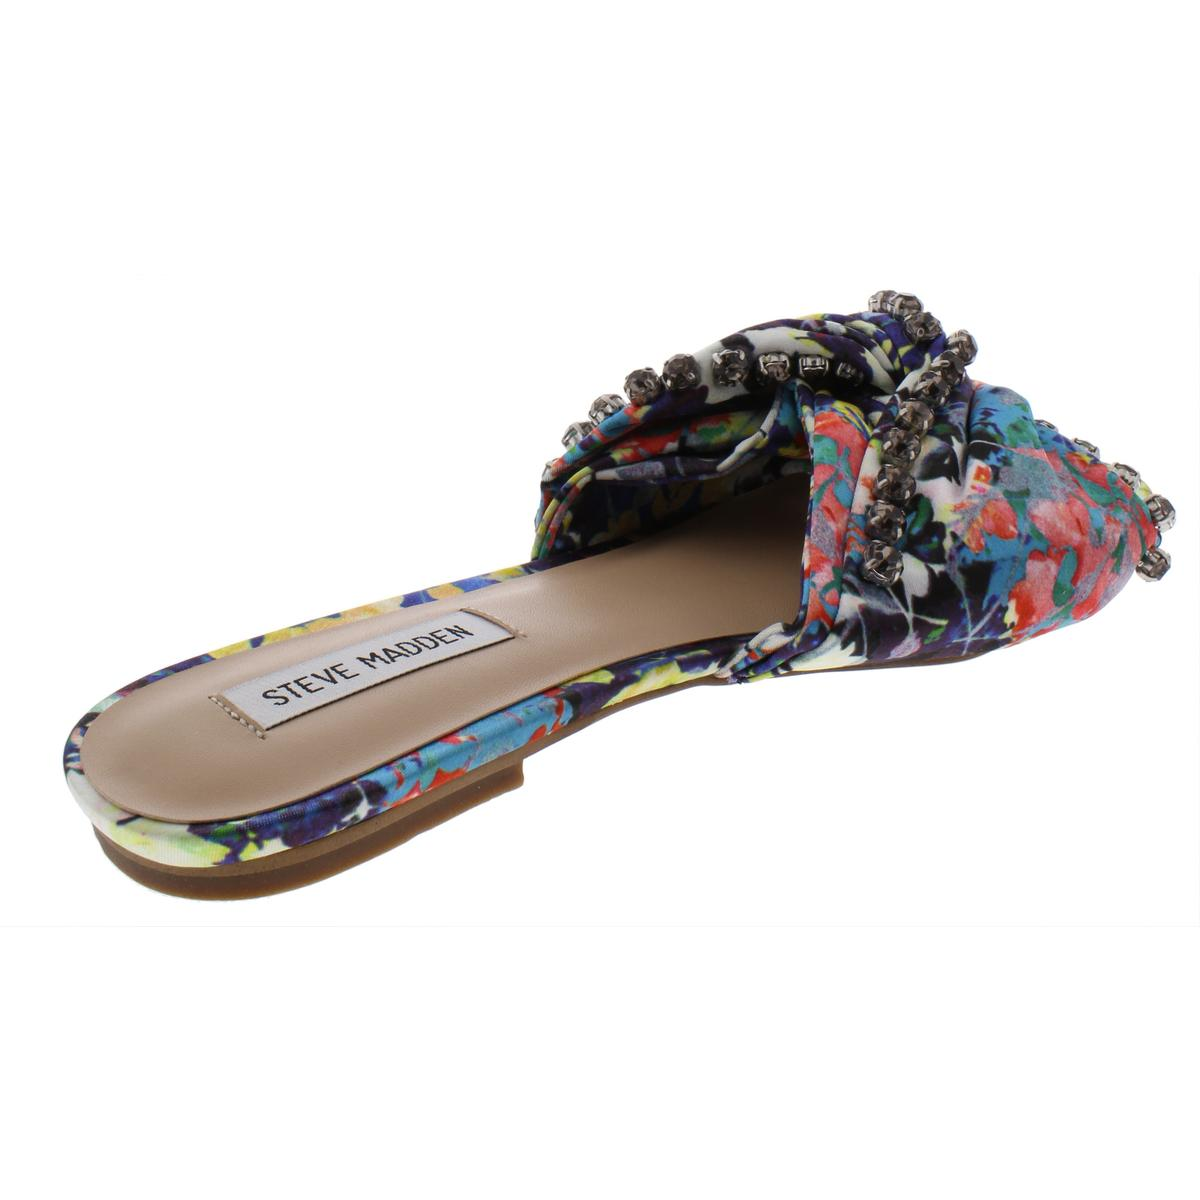 c4924167a94 Details about Steve Madden Womens Cheeky Slides Sandals Embellished Flats  Shoes BHFO 1255